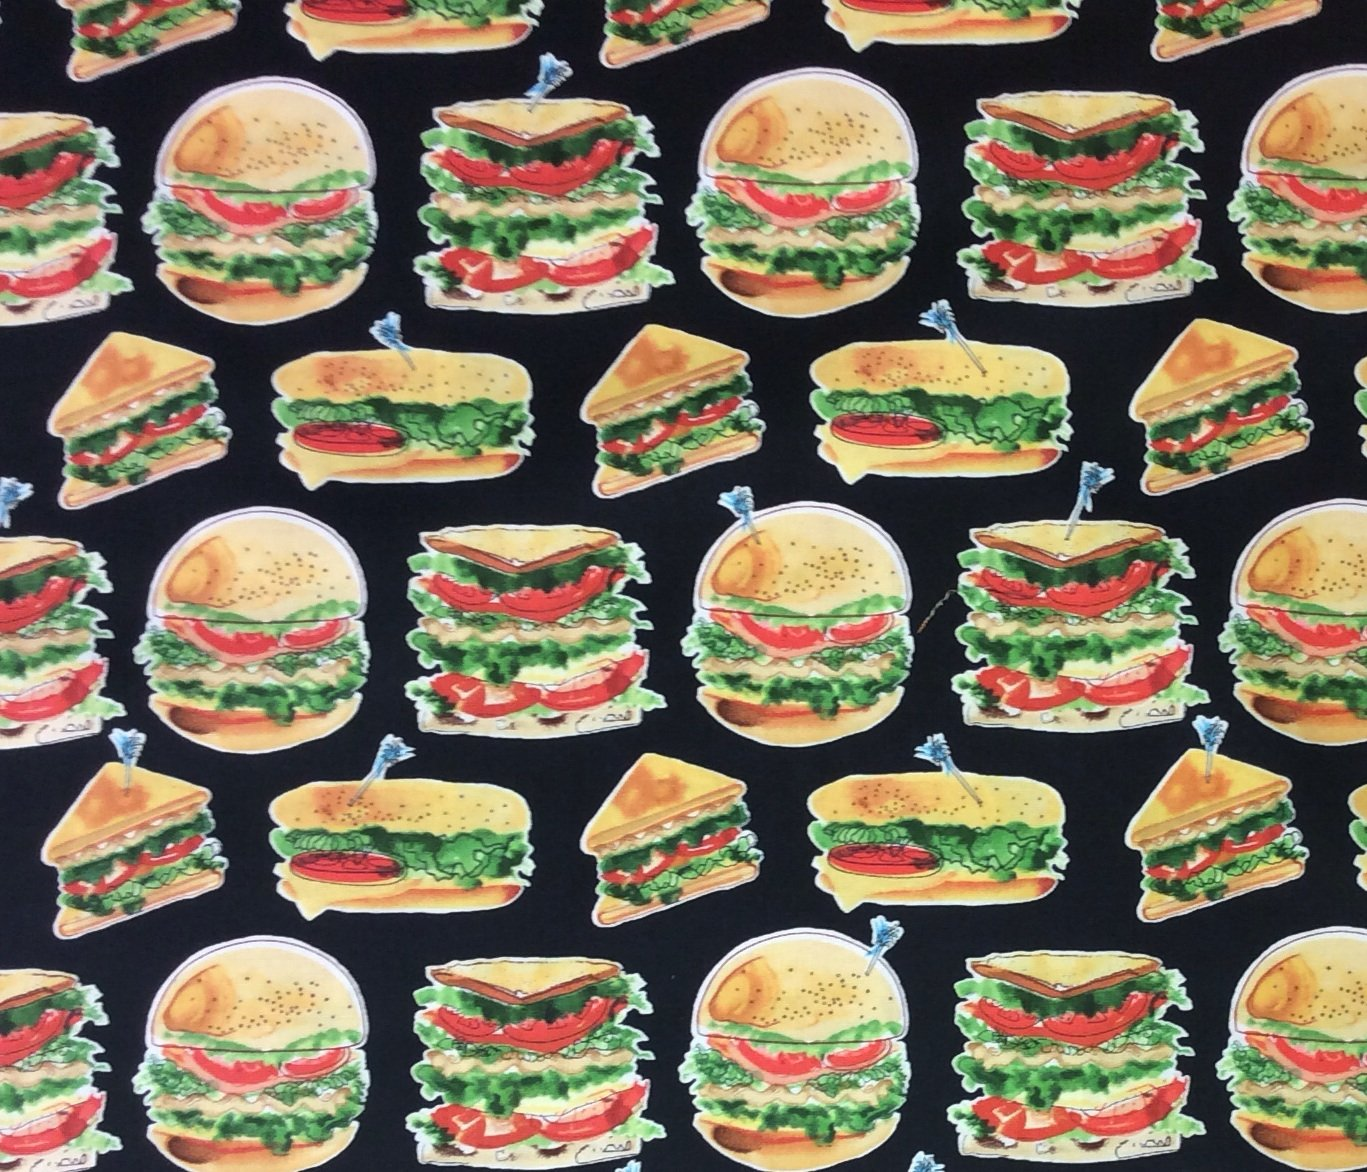 Hamburgers Sandwiches Subs Panini Lunch Food Dinner Quilting Cotton Fabric MD208